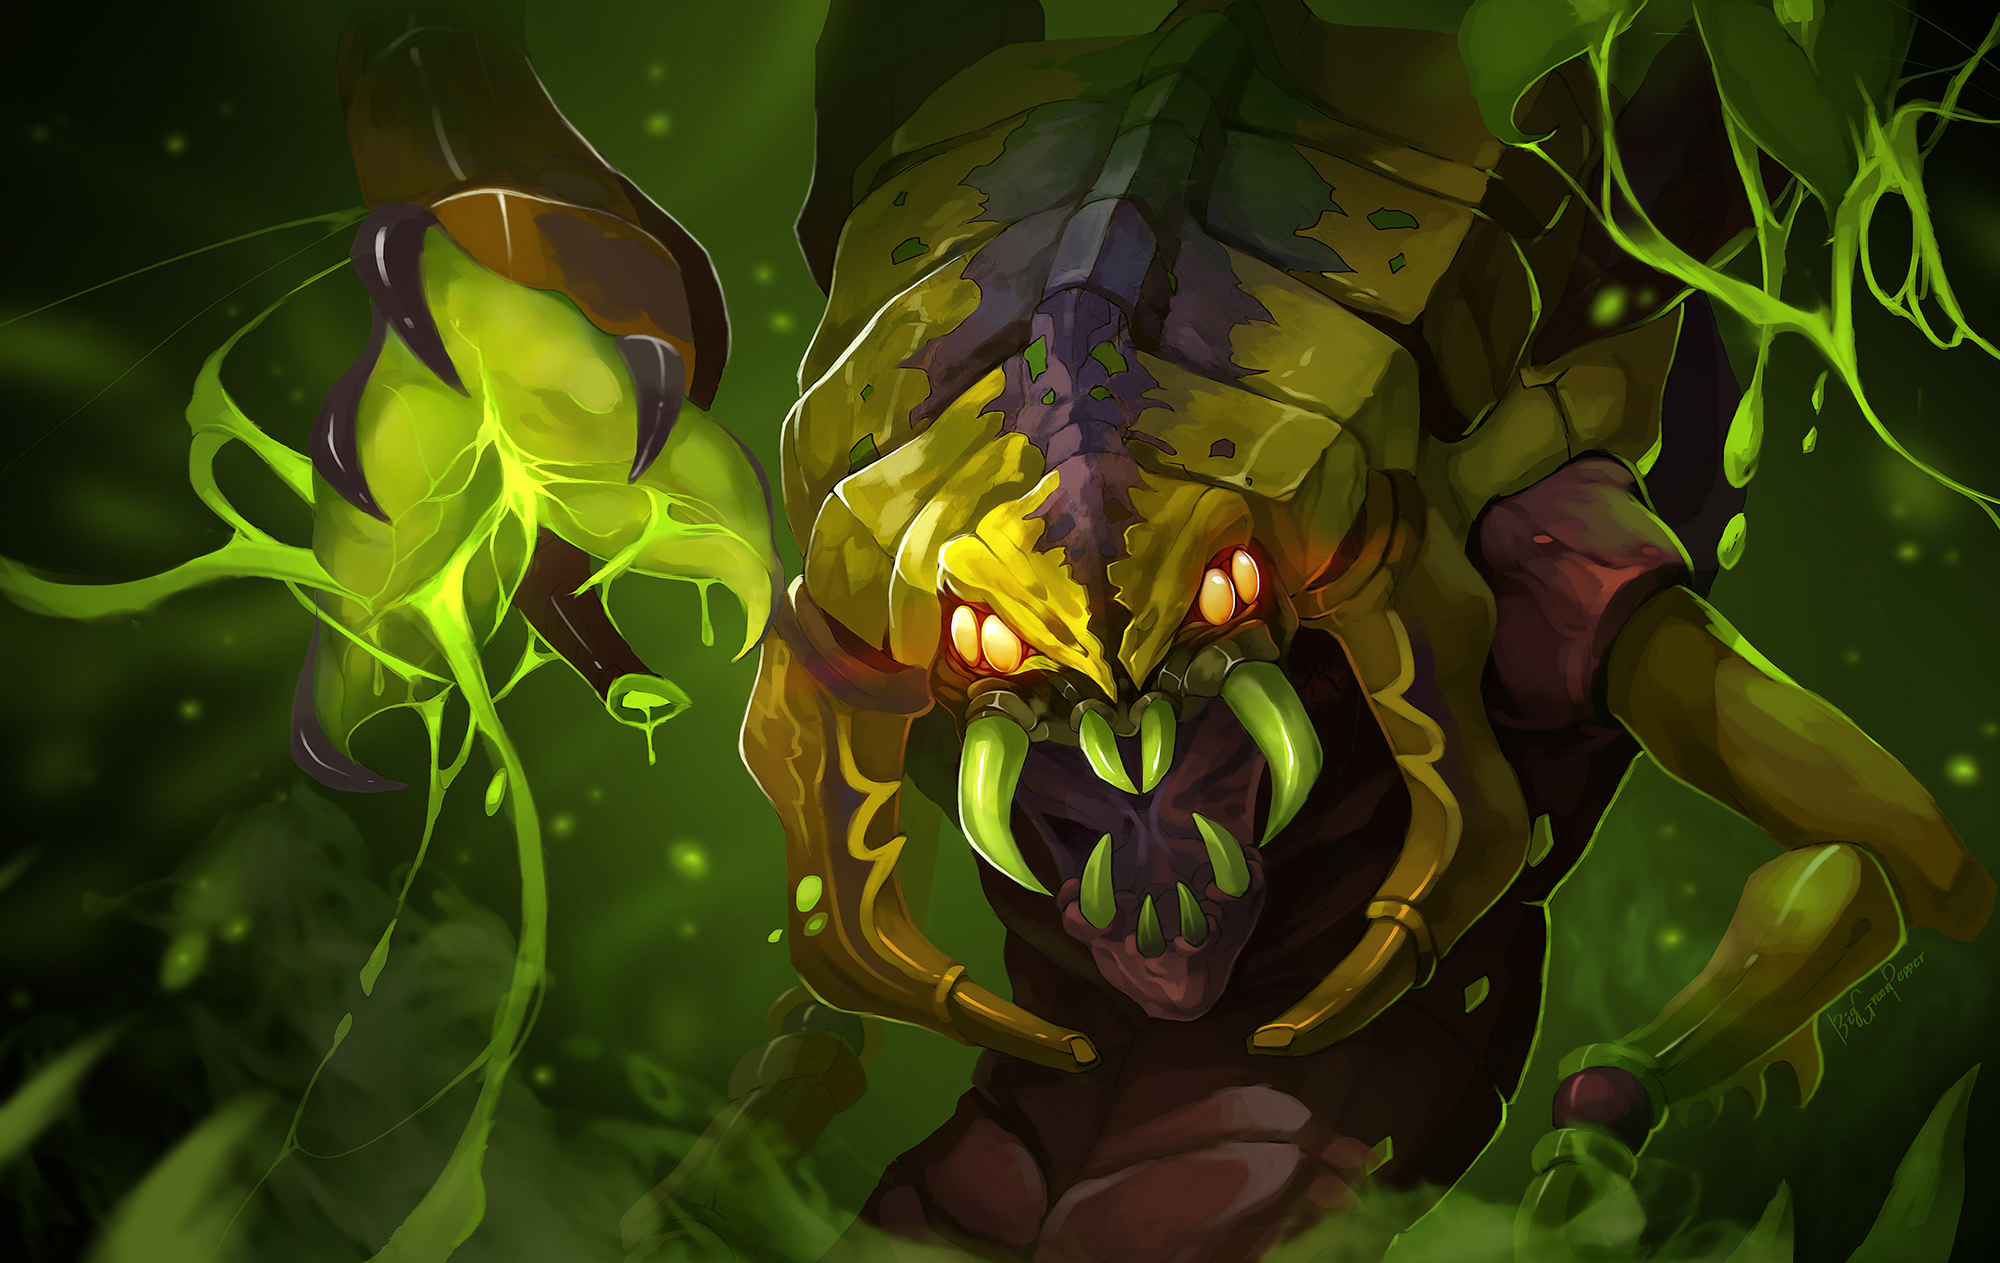 DOTA 2 Lesale Deathbringer by biggreenpepper